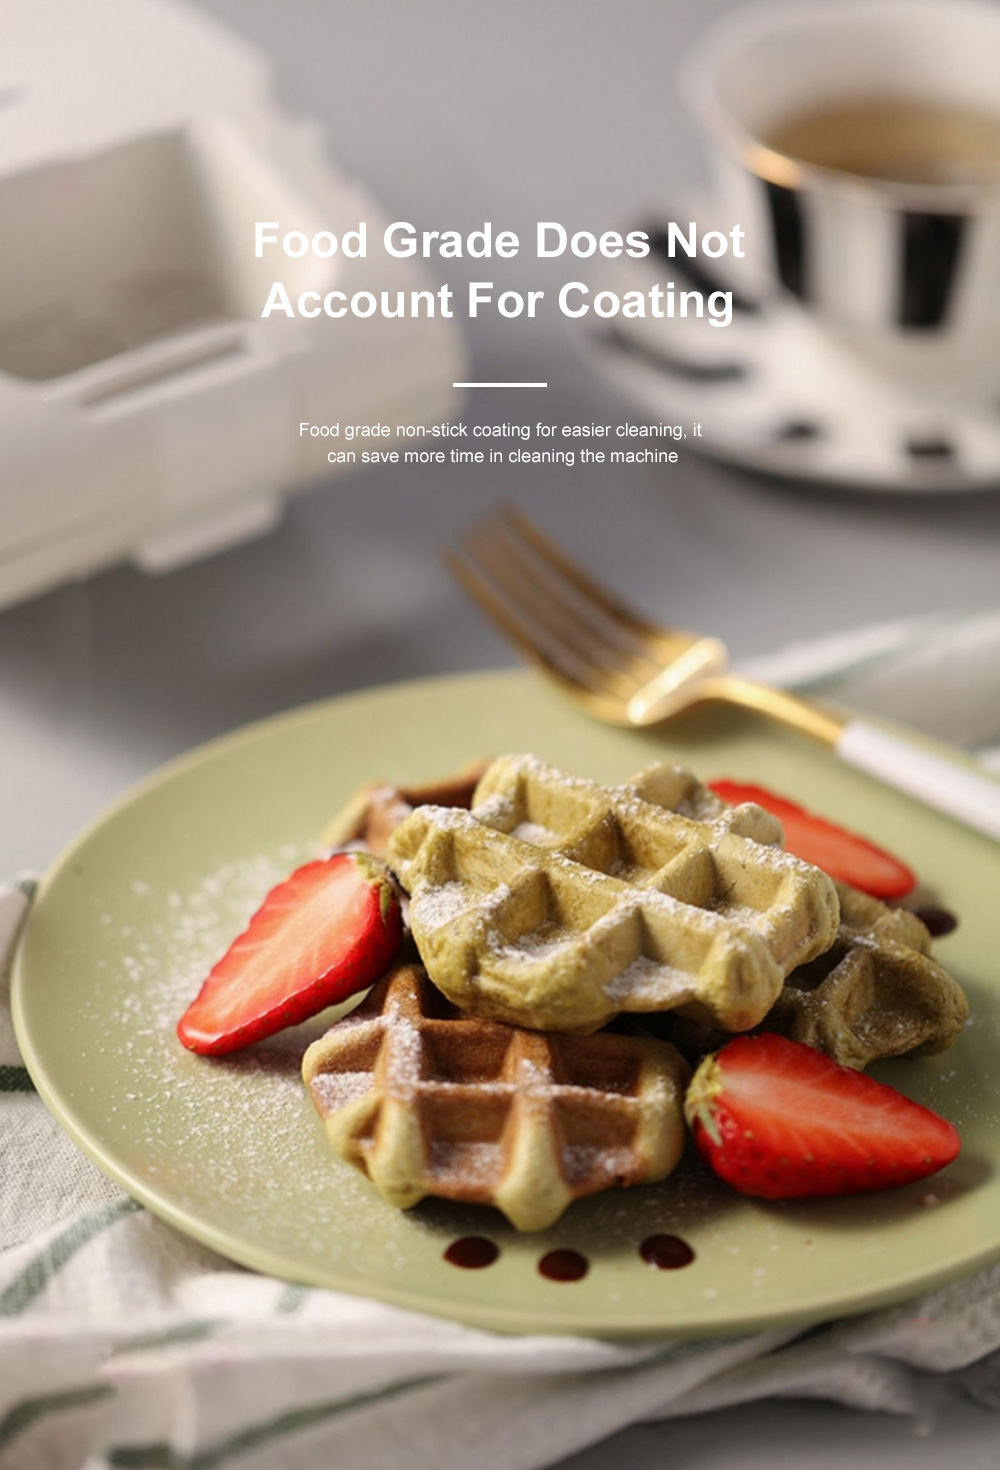 Kitchen Multifunctional Three-minute Breakfast Machine Sandwich Maker Waffle For Making Toast Bread Cookies Muffins Price 2